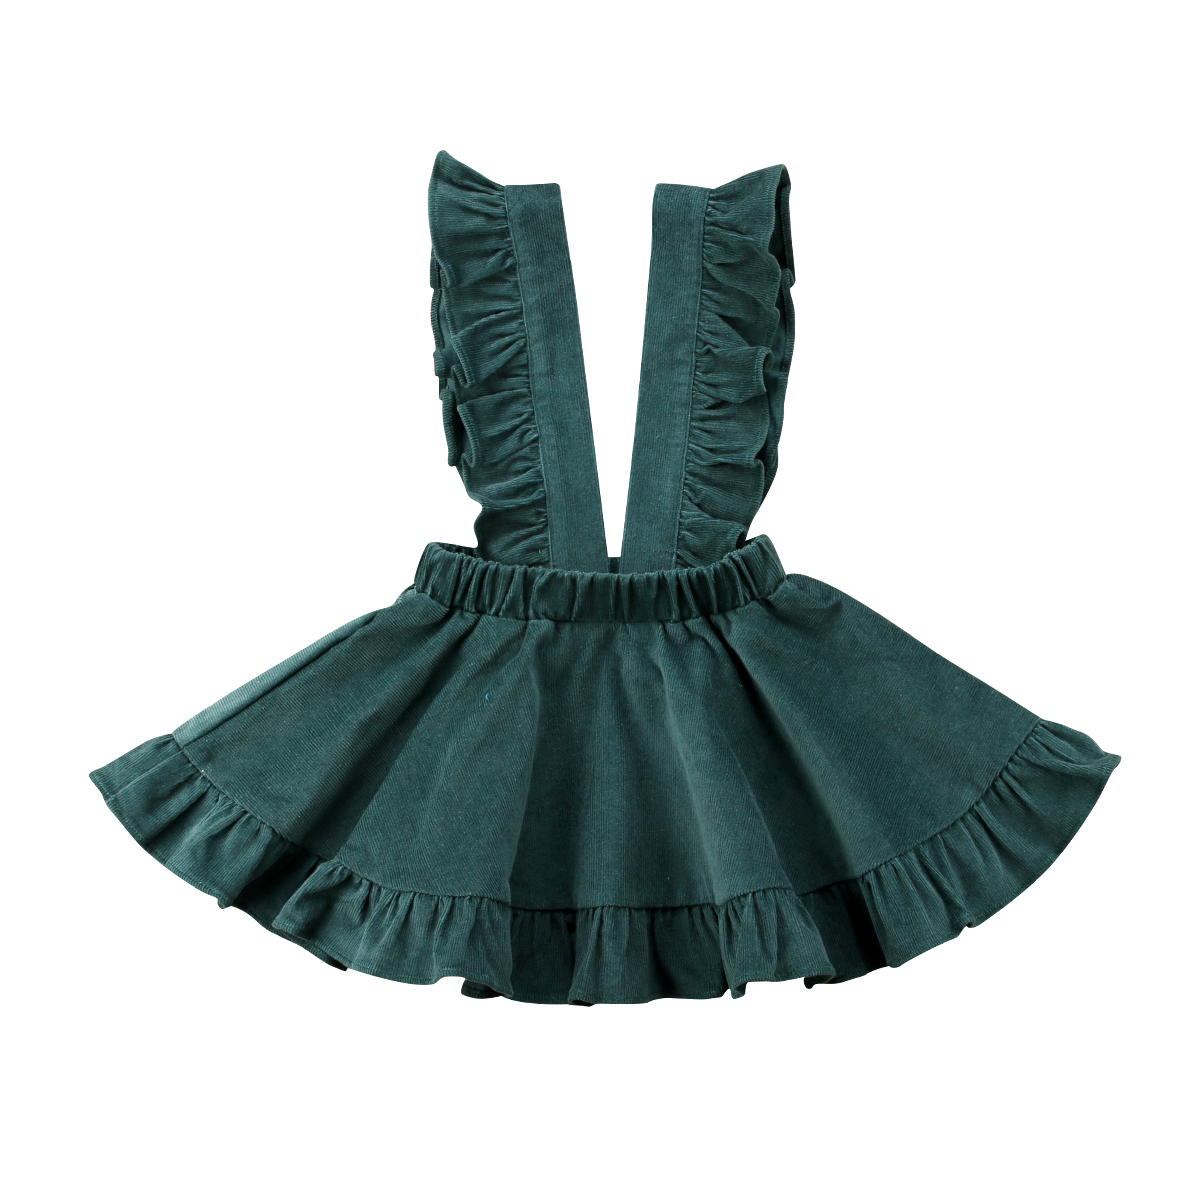 Toddler Baby Kids Girls Infant Strap Suspender Skirt Overalls Outfits Summer Girl Clothes 2-6 Years